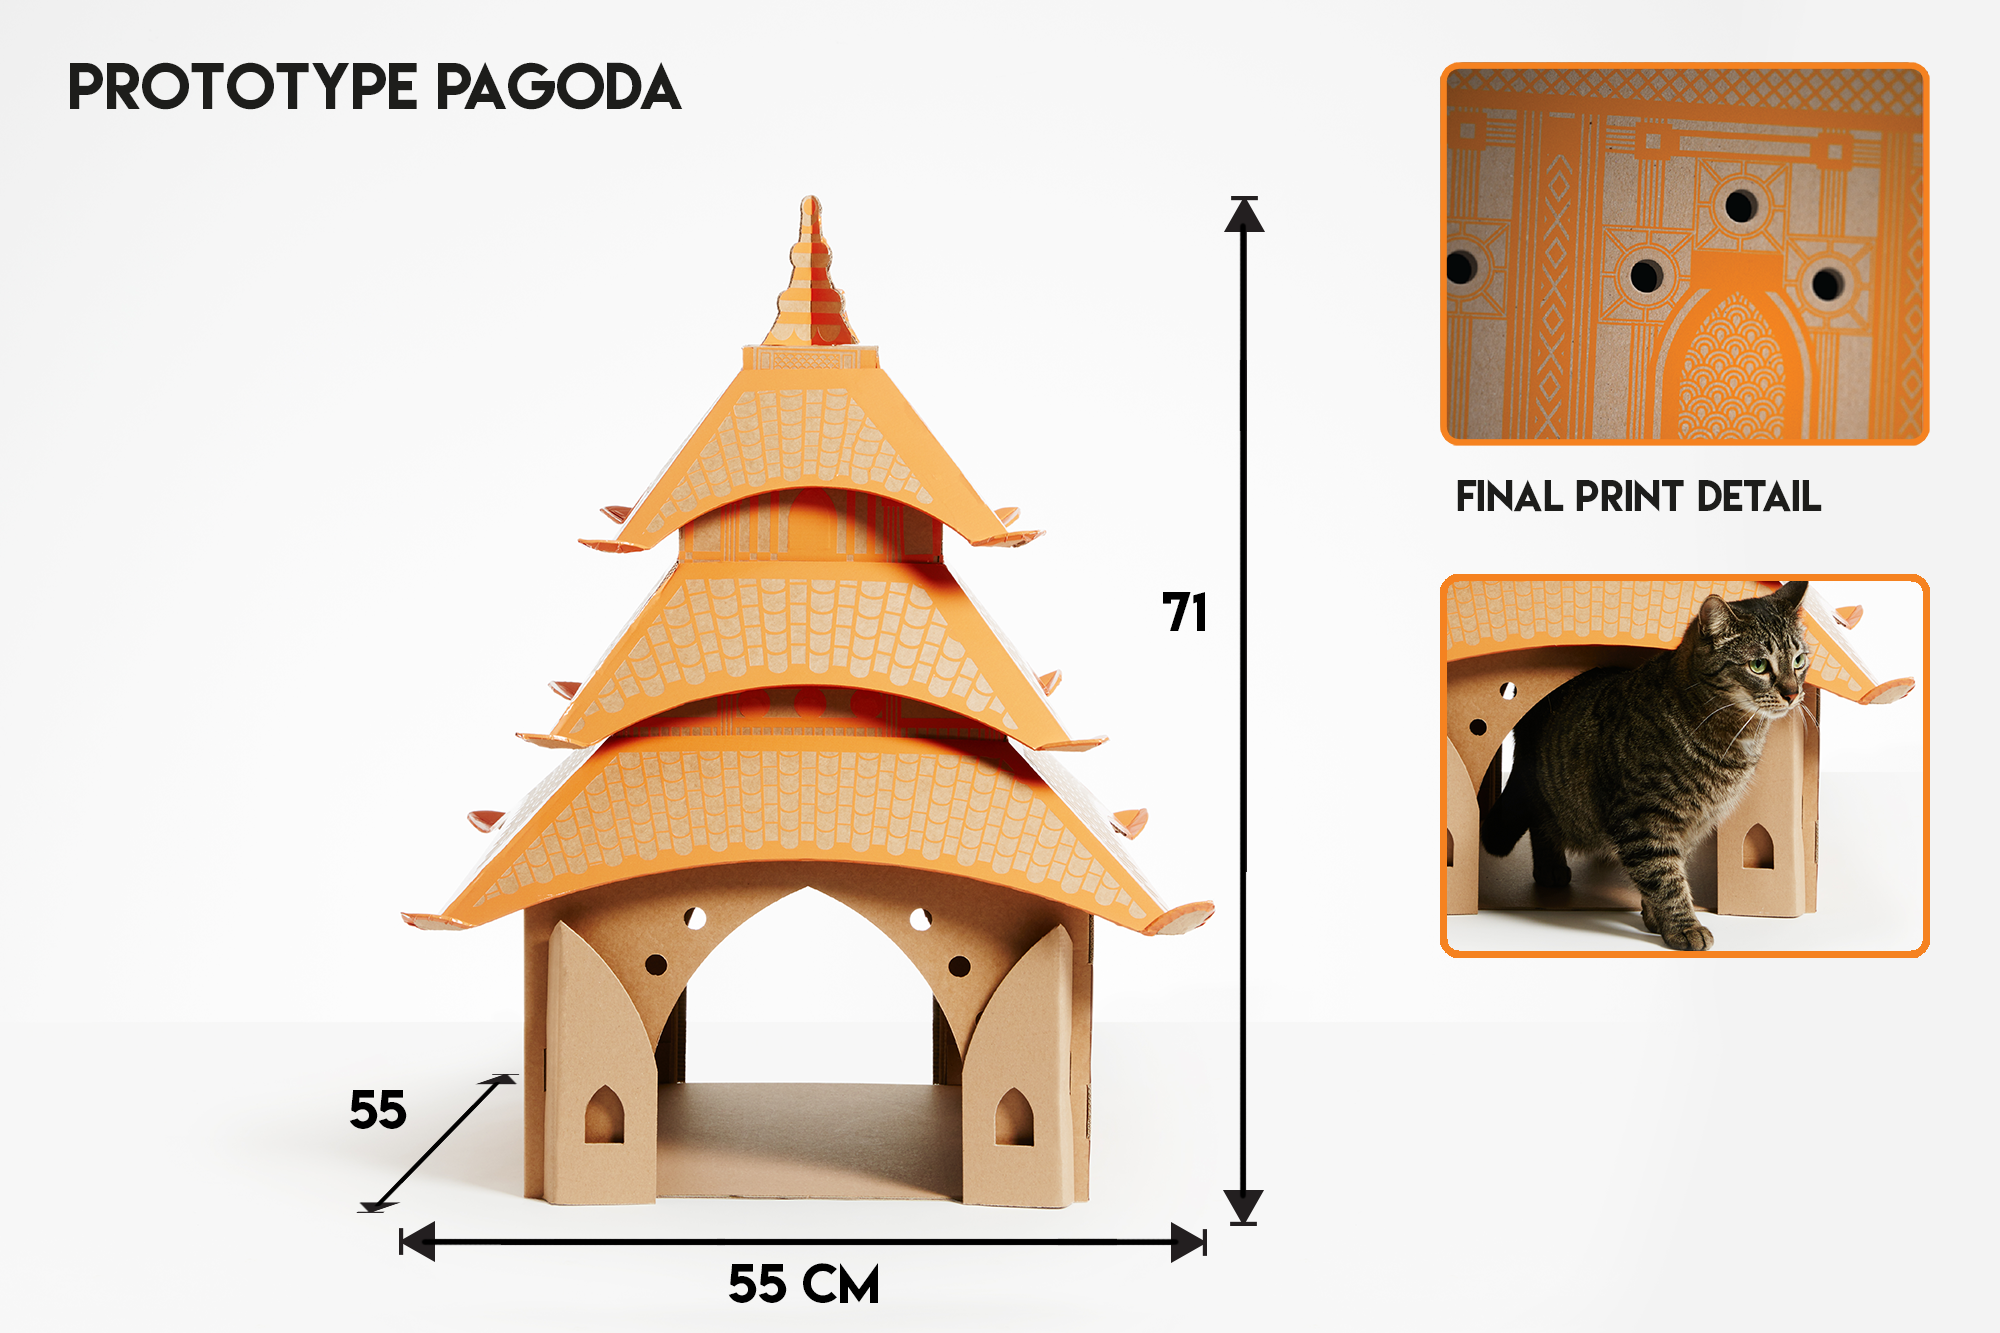 How Long Will It Take Your Furball to Shred One of These Incredible Cardboard Cathouses?